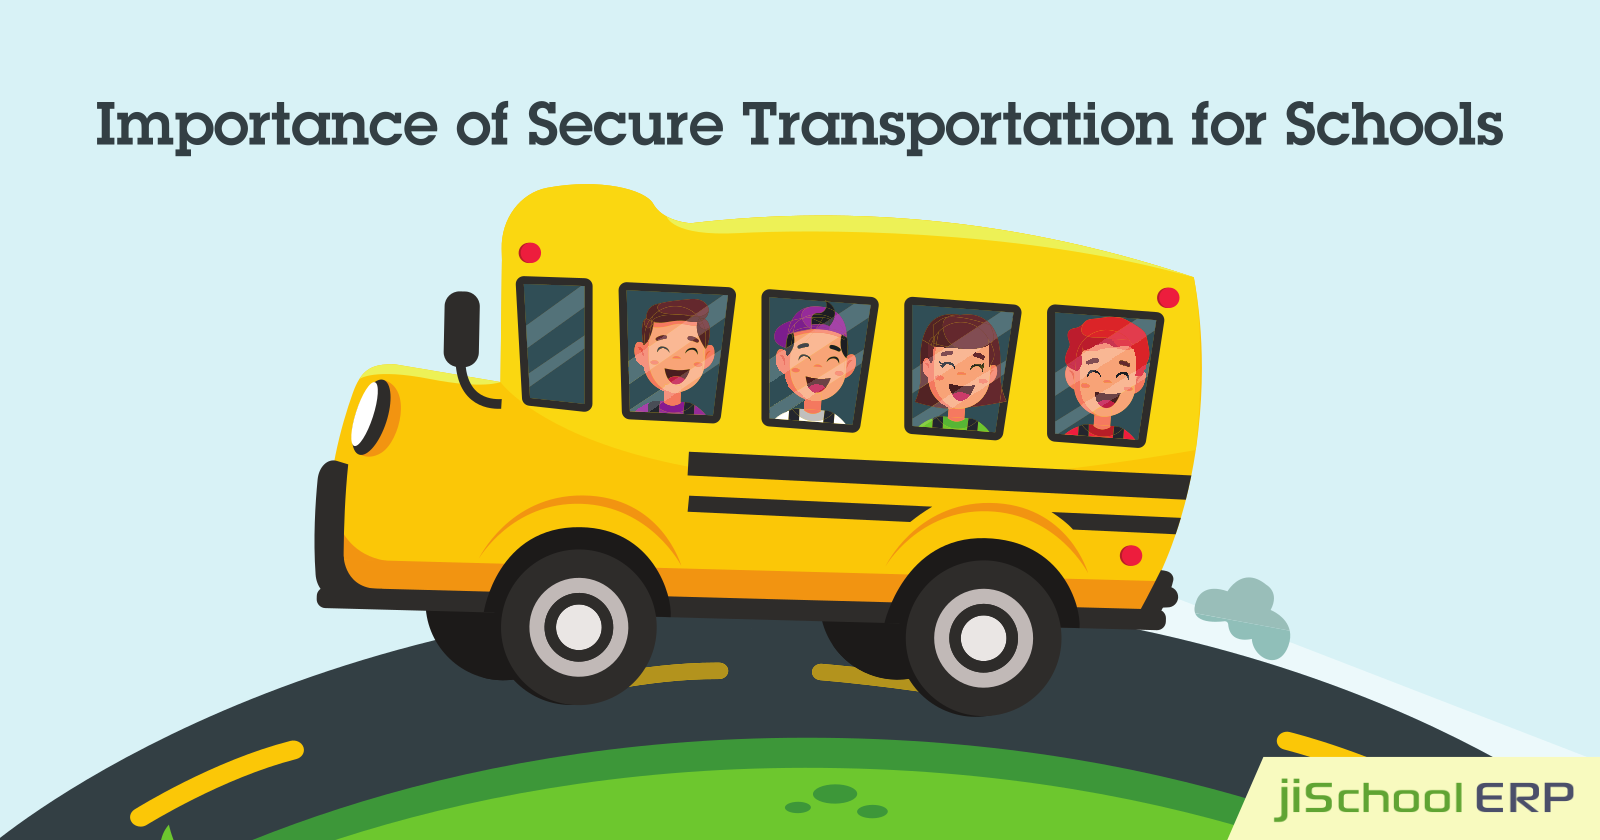 How School ERP Offers a Secure Transportation System